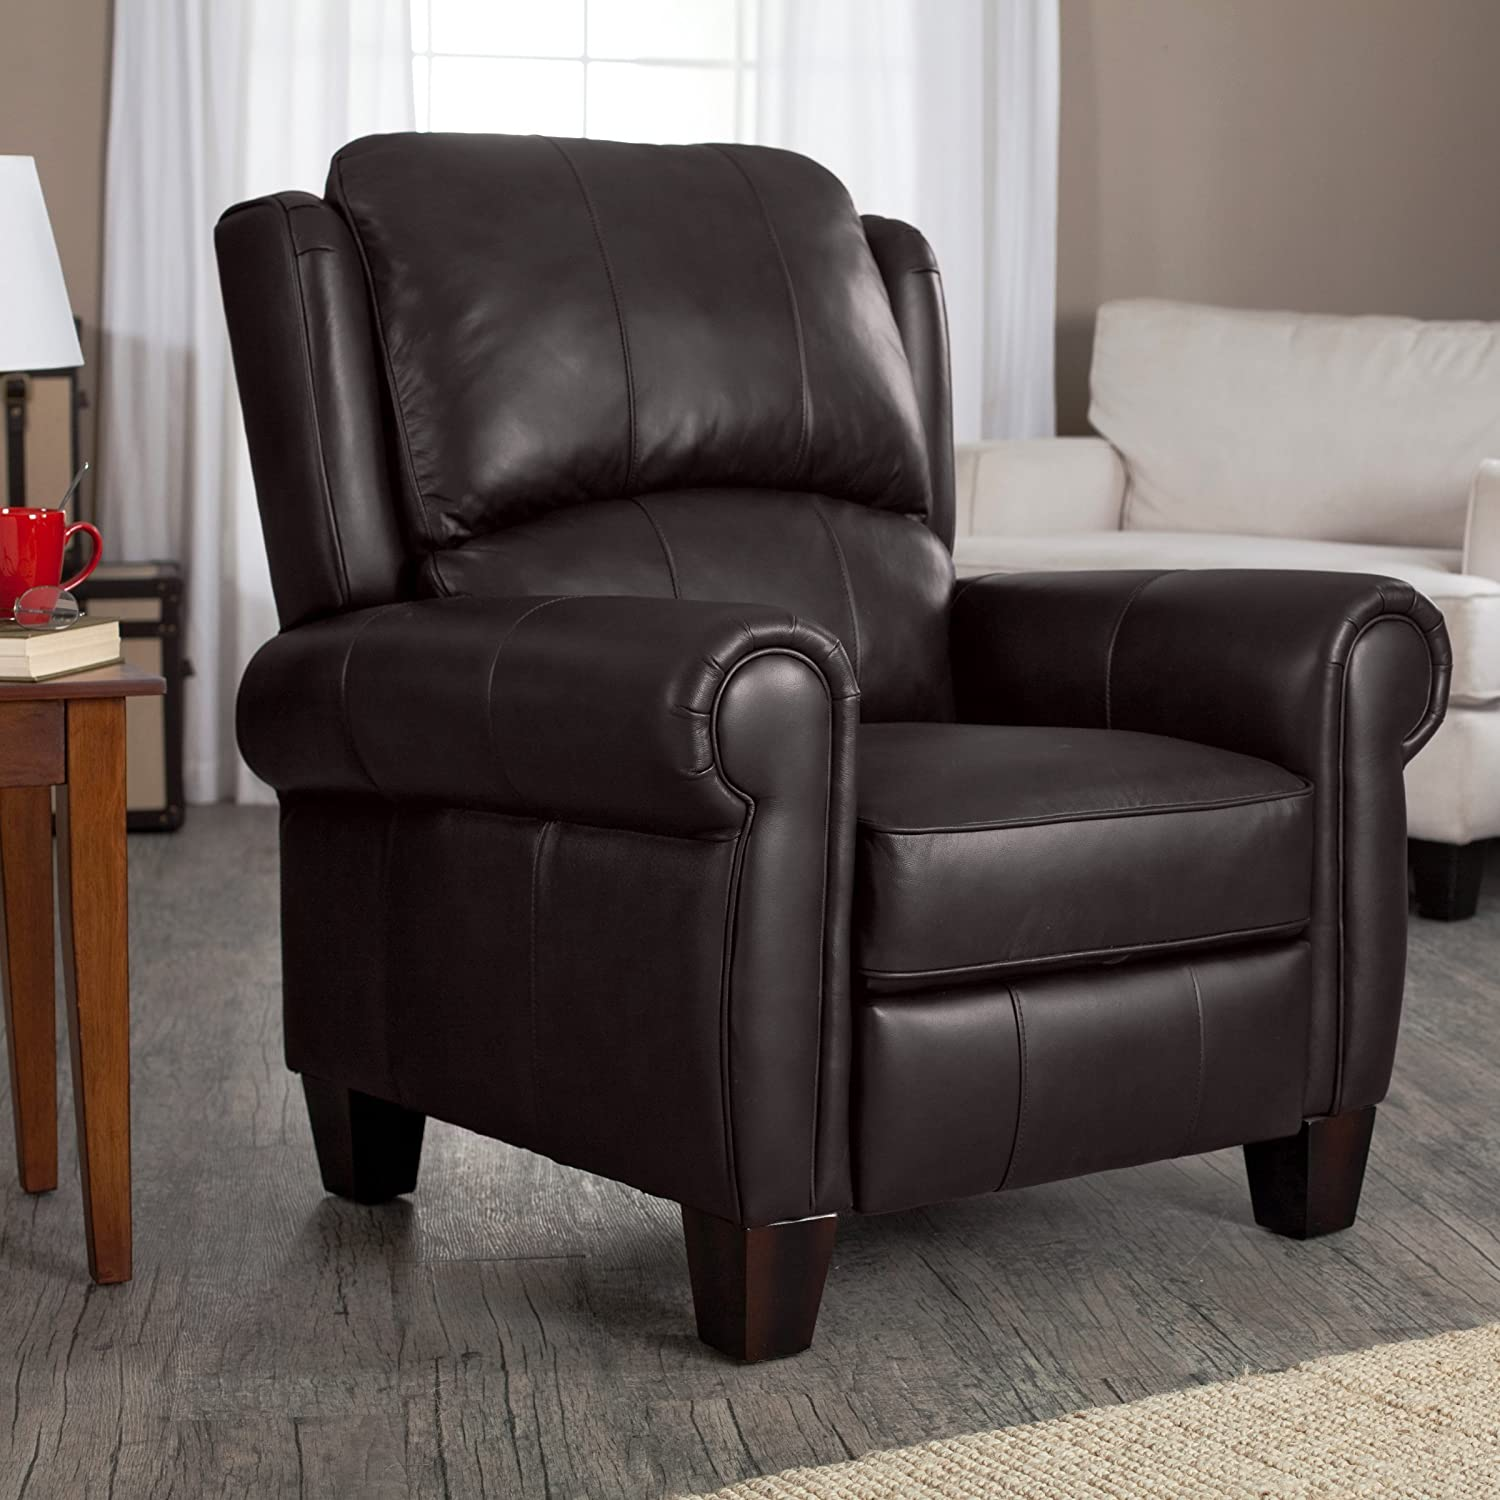 chocolate brown living room furniture. amazoncom brown leather reclinerliving room furniturebarcalounger office chair recliners charleston wingbackbuy today kitchen u0026 dining chocolate living furniture r